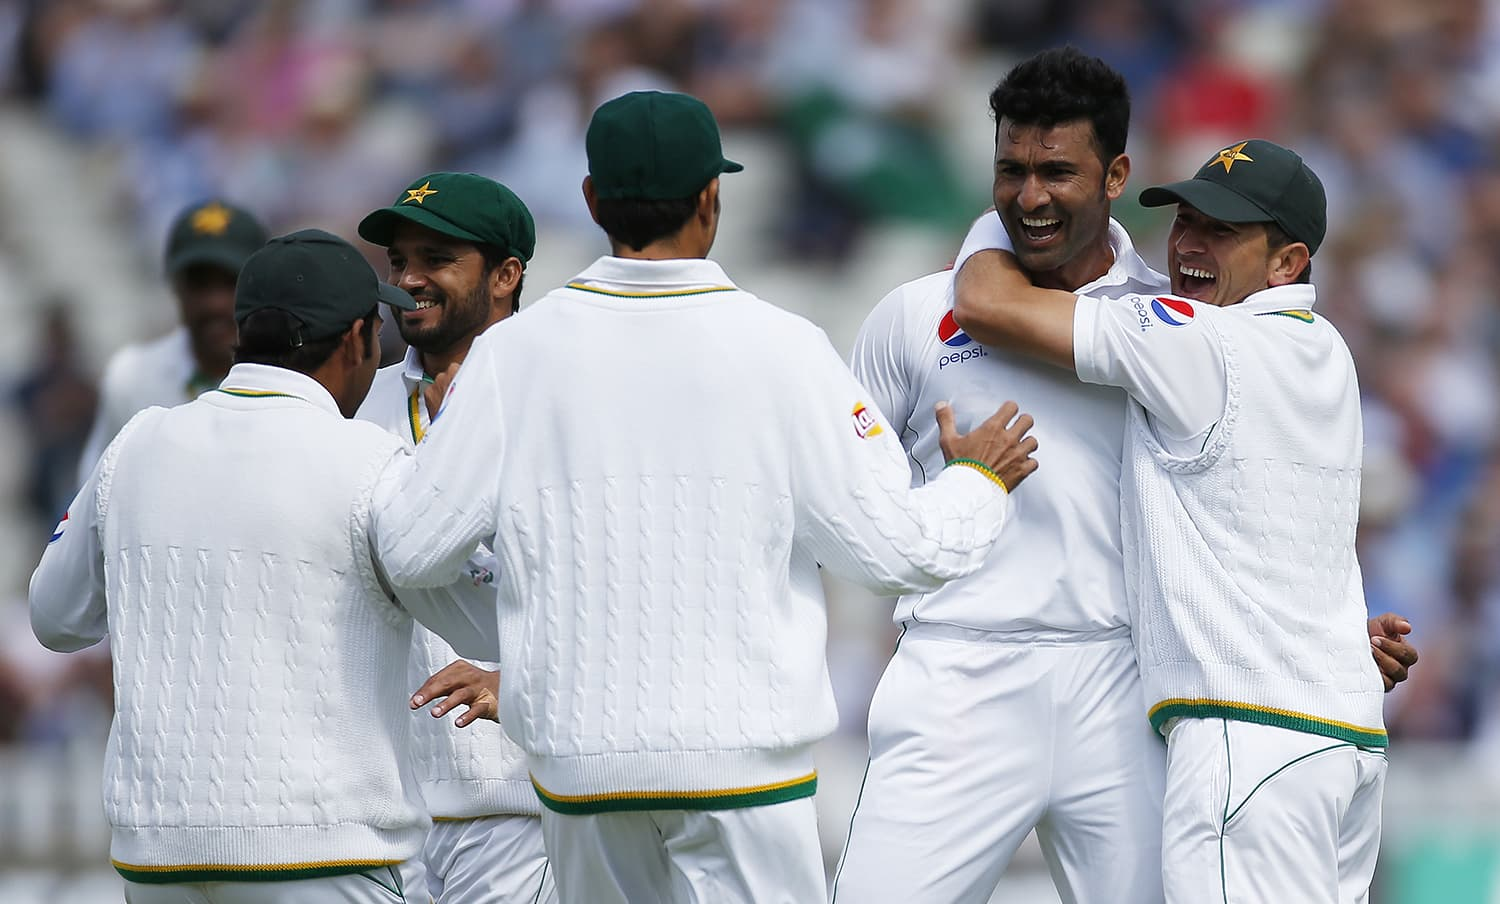 Sohail Khan celebrates with team mates after taking the wicket of England's Joe Root. — Reuters